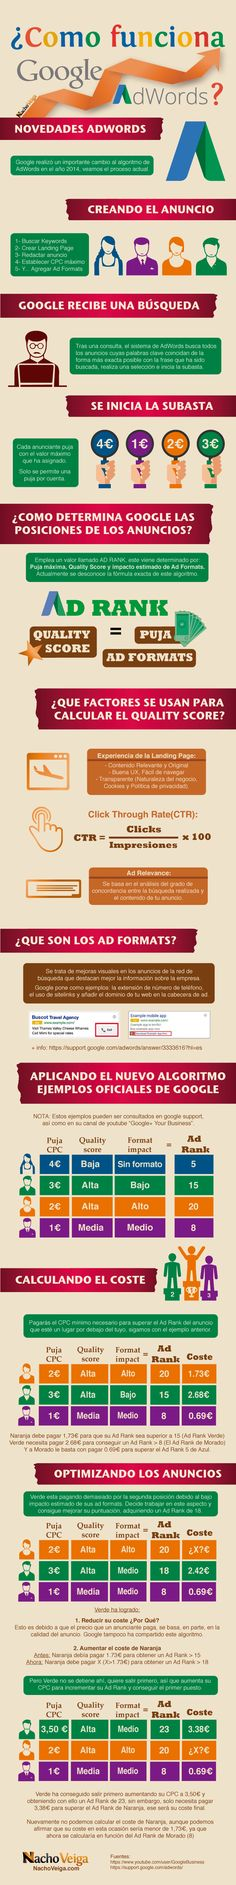 Cómo funciona Google Adwords #infografia #infographic #marketing